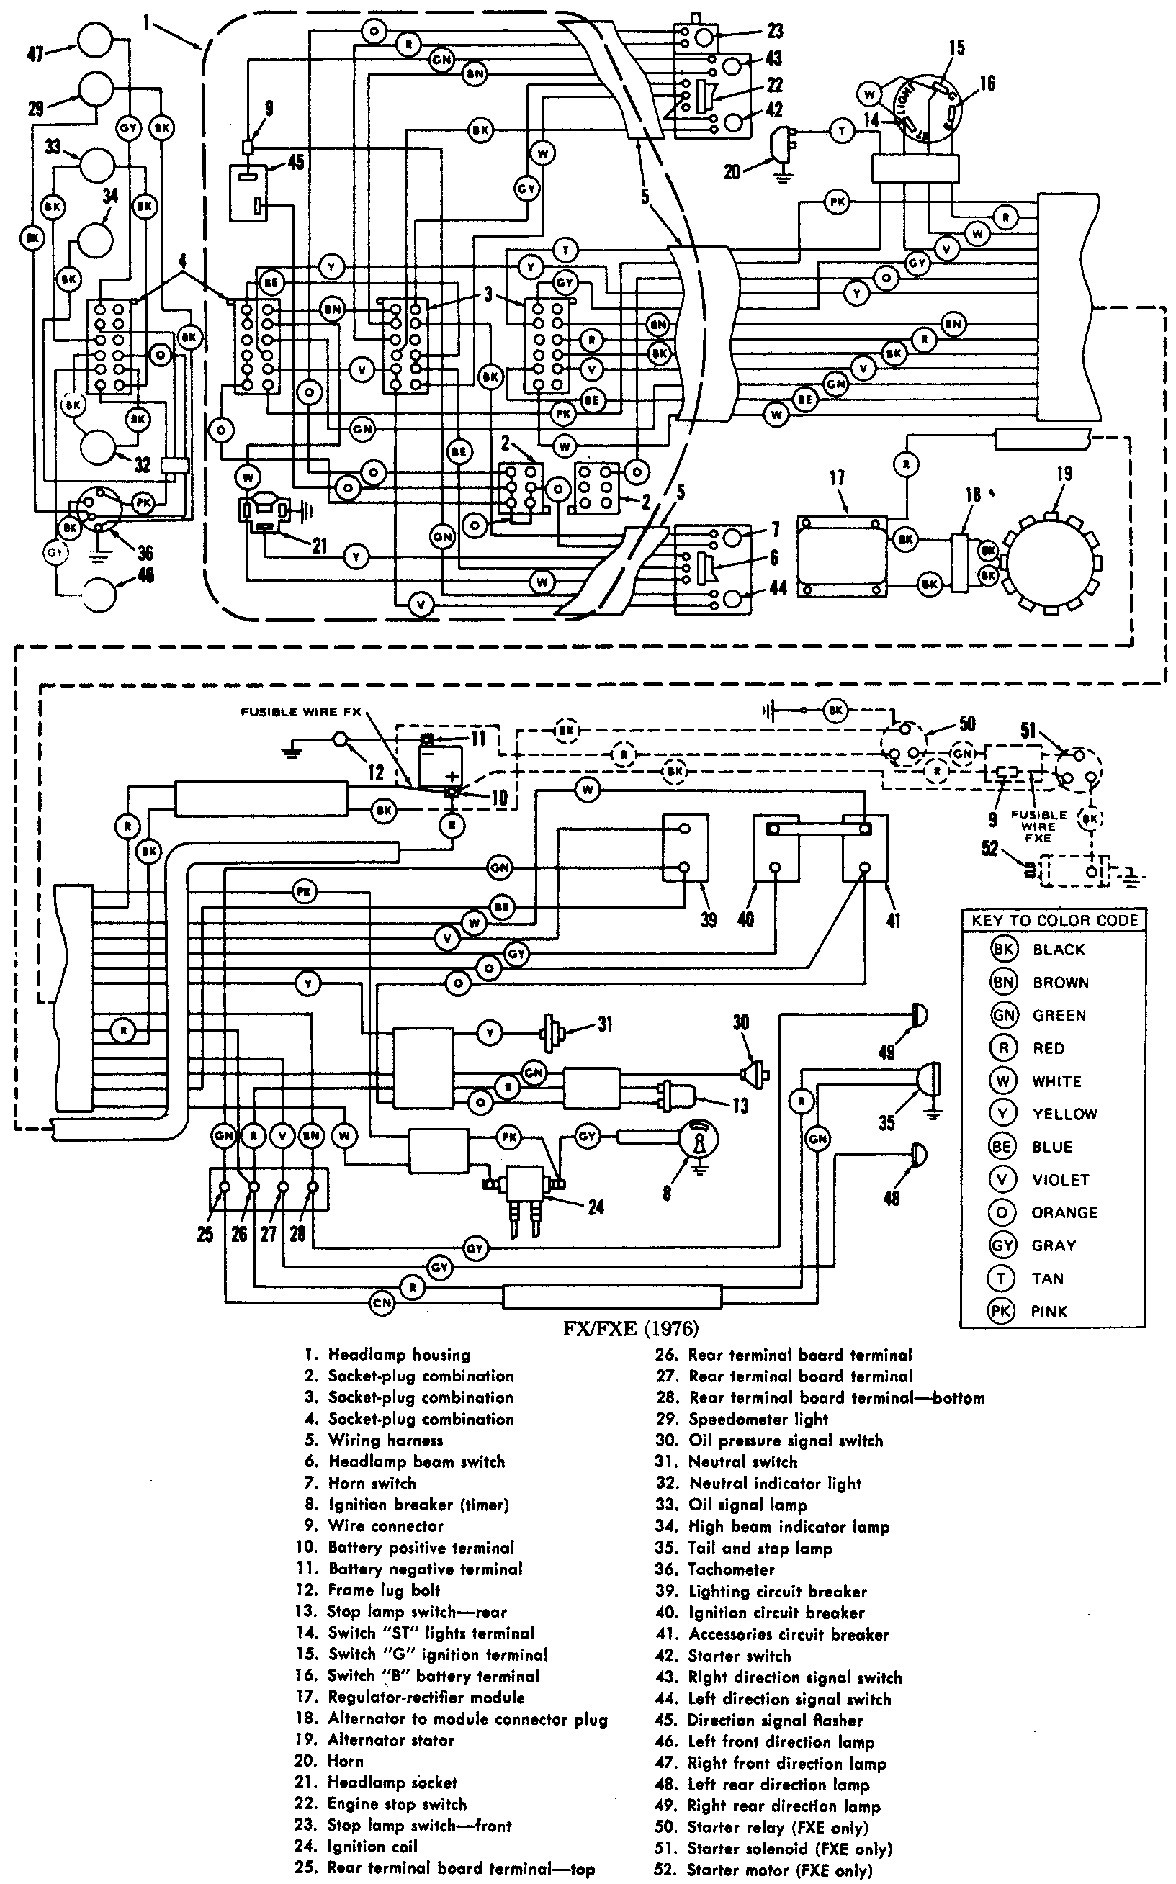 WRG-5771] Harley Softail Turn Signal Wiring Diagram on